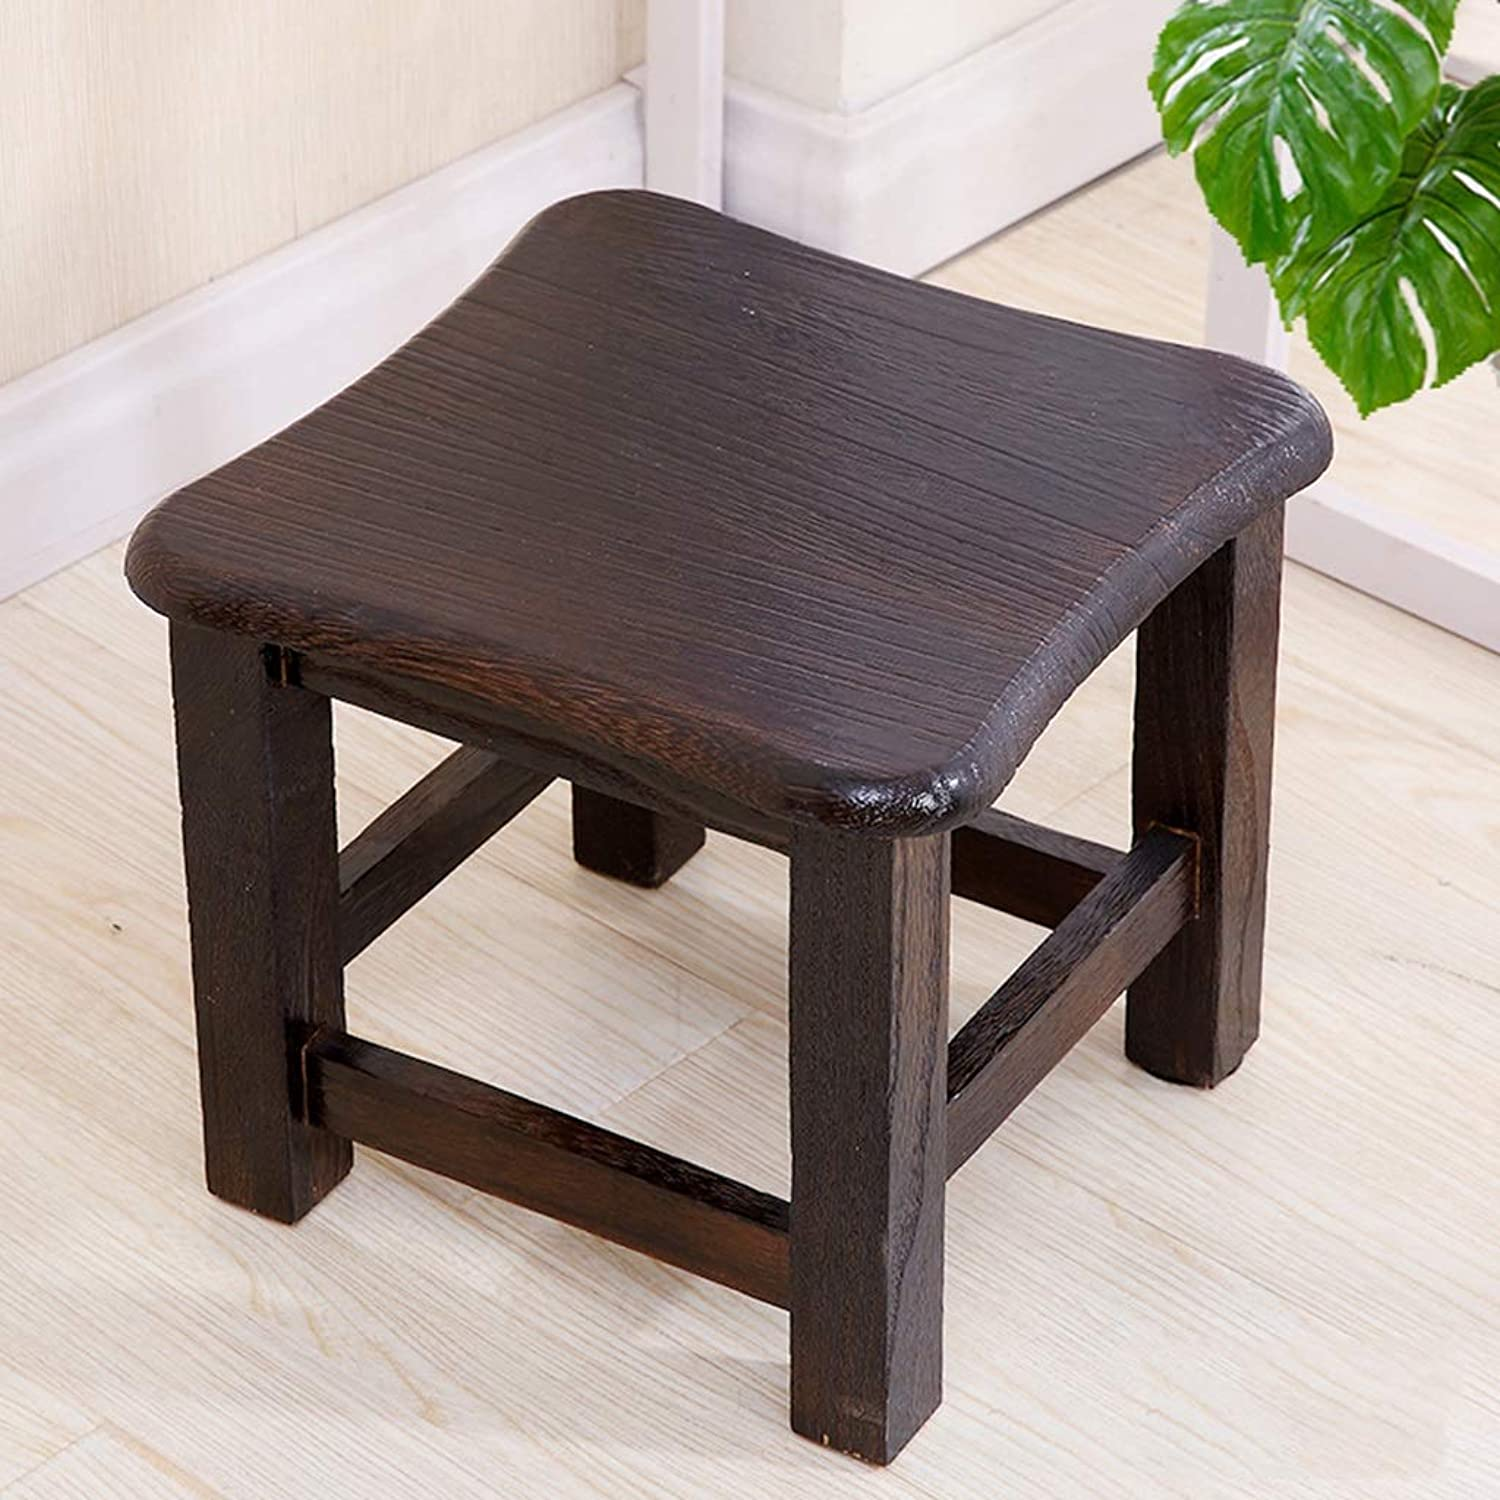 Small Square Stool Footstool Solid Wood Change shoes Bench Lightweight Chair Bathroom,Living Room Coffee Table,Bedroom,Garden Fishing Camping (color   Black)